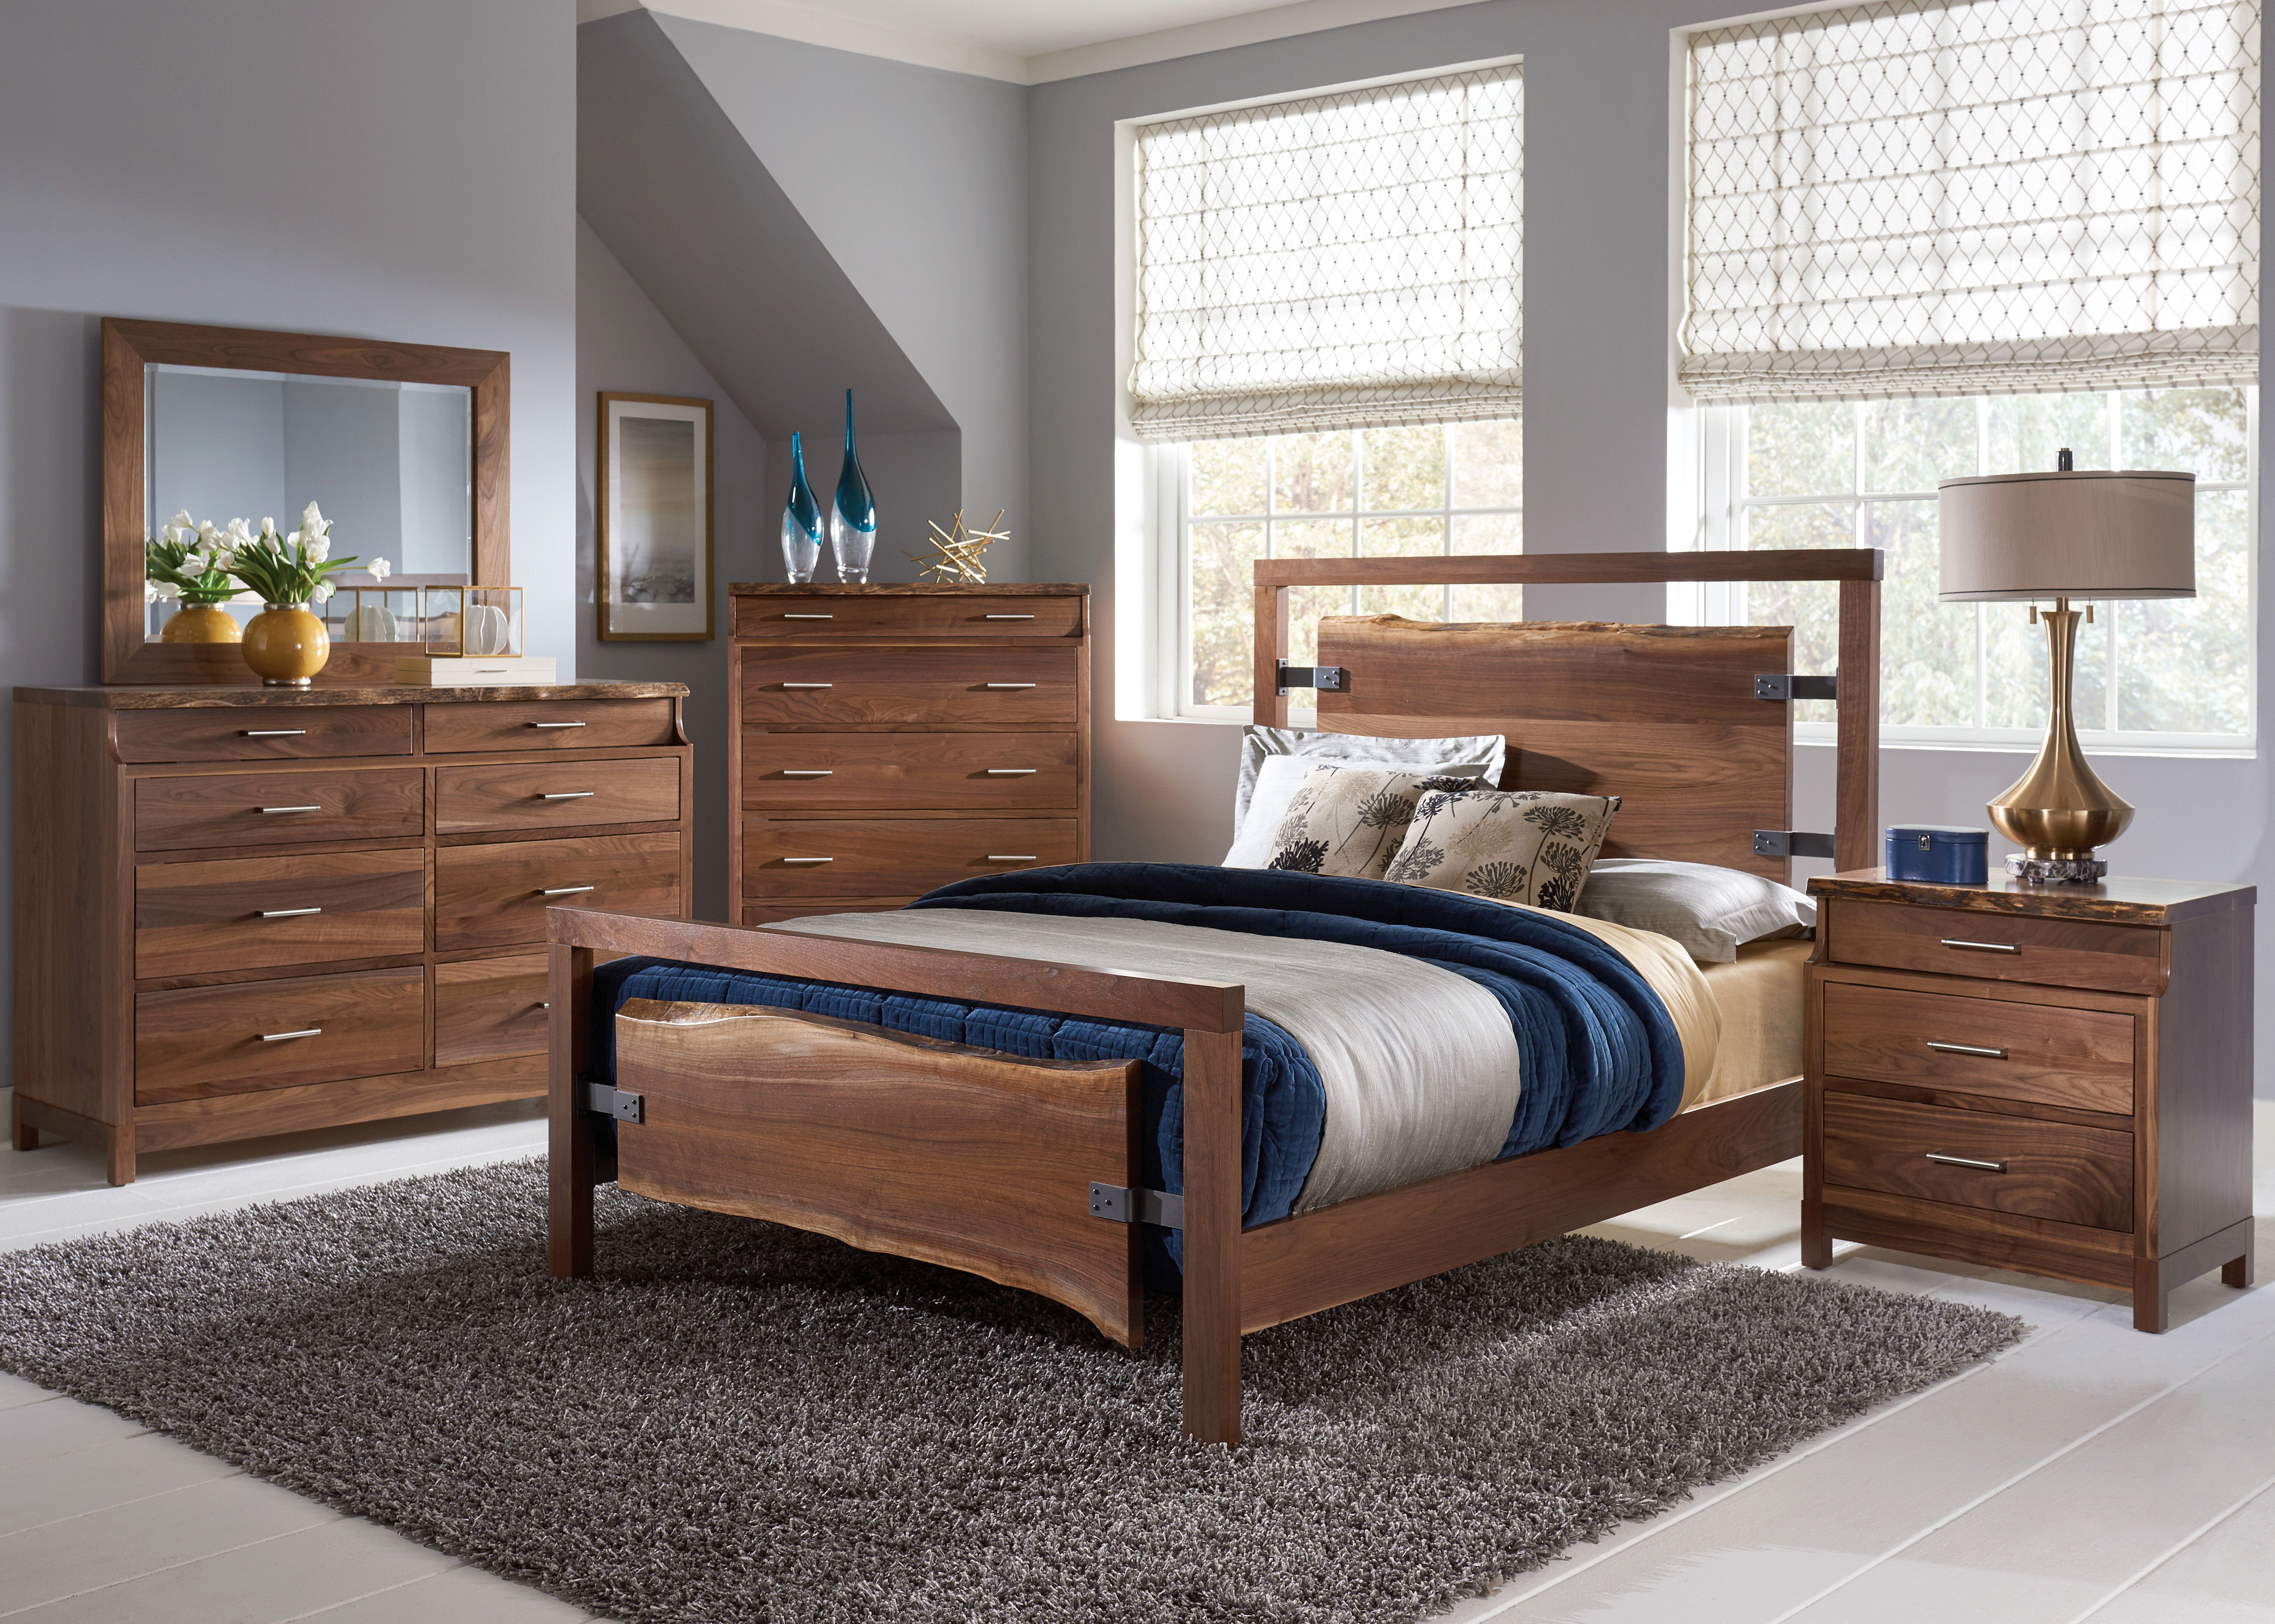 Tremendous Up To 33 Off Westmere Bedroom Collection Furniture Home Interior And Landscaping Pimpapssignezvosmurscom